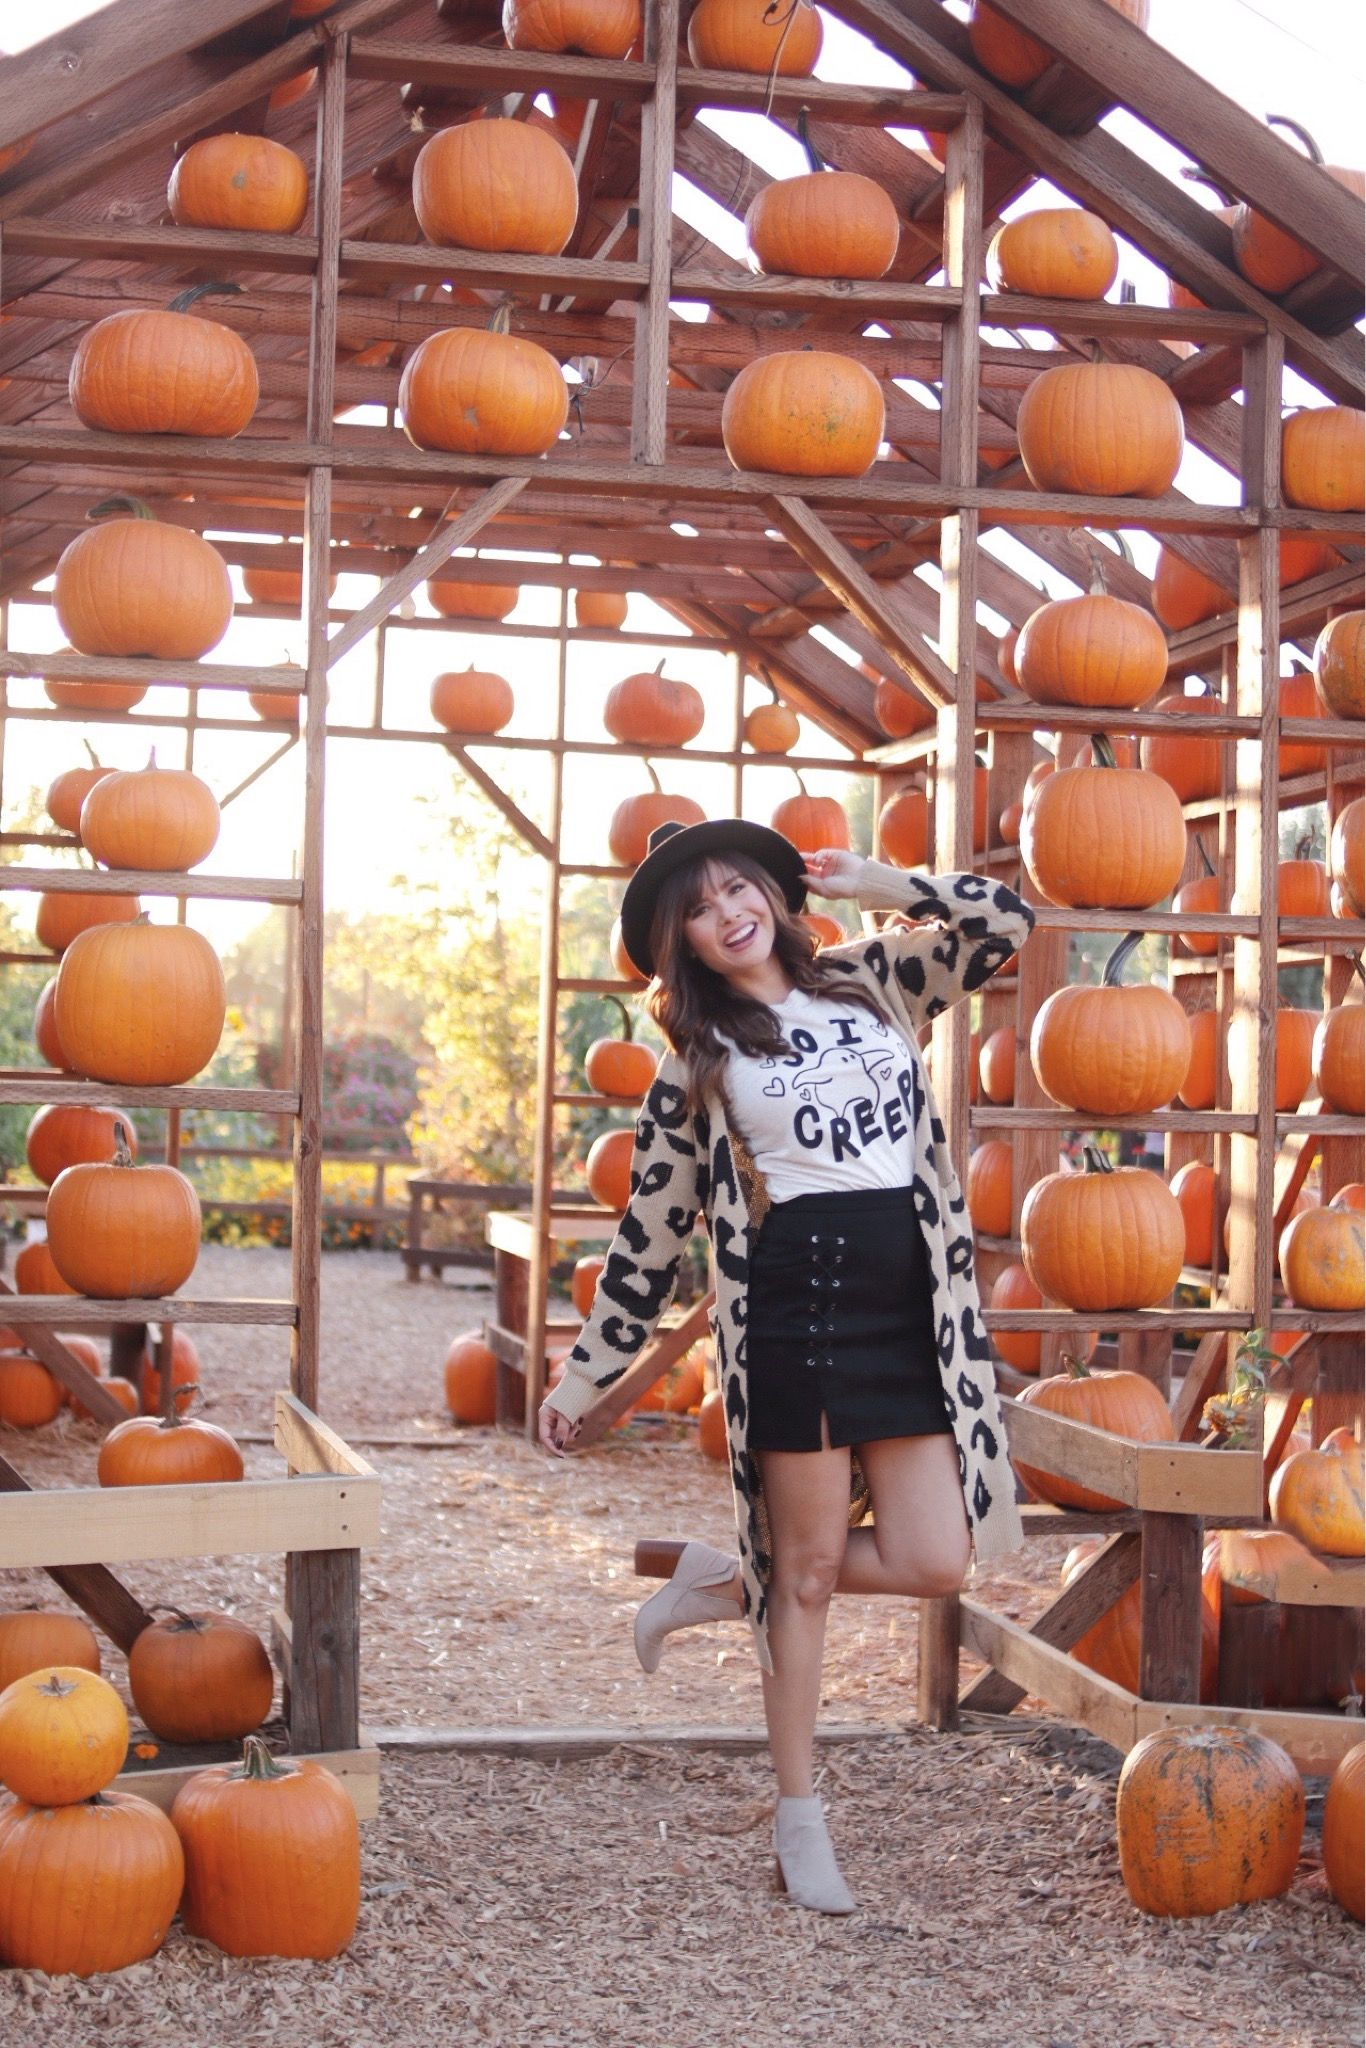 Fall Pumpkin Patch Pictures